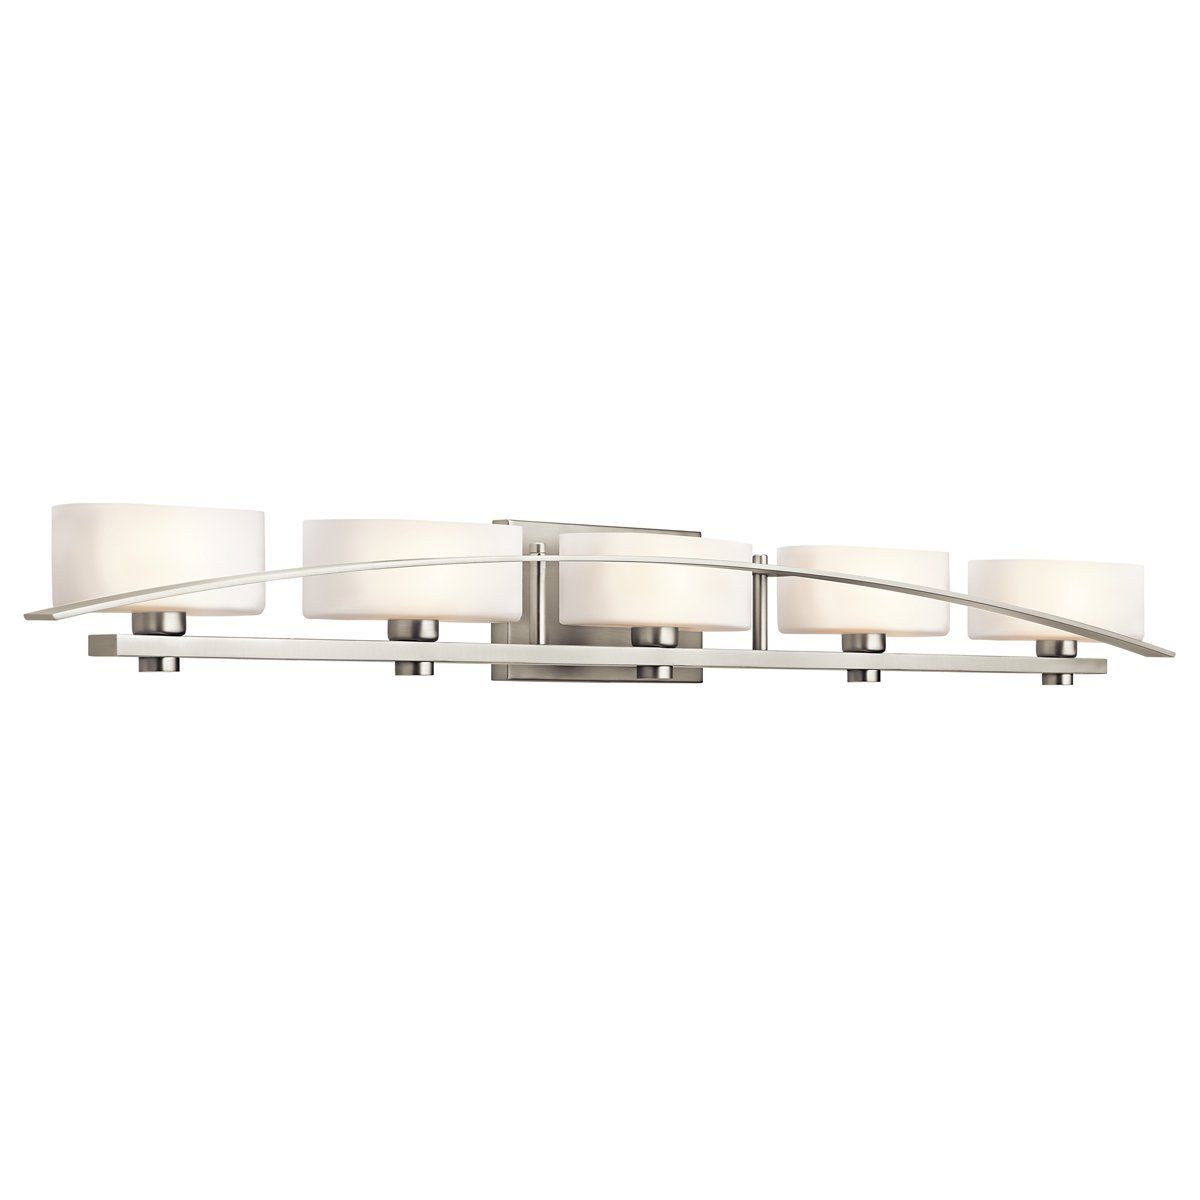 Kichler 45319ni five light bath vanity lighting fixtures amazon aloadofball Choice Image